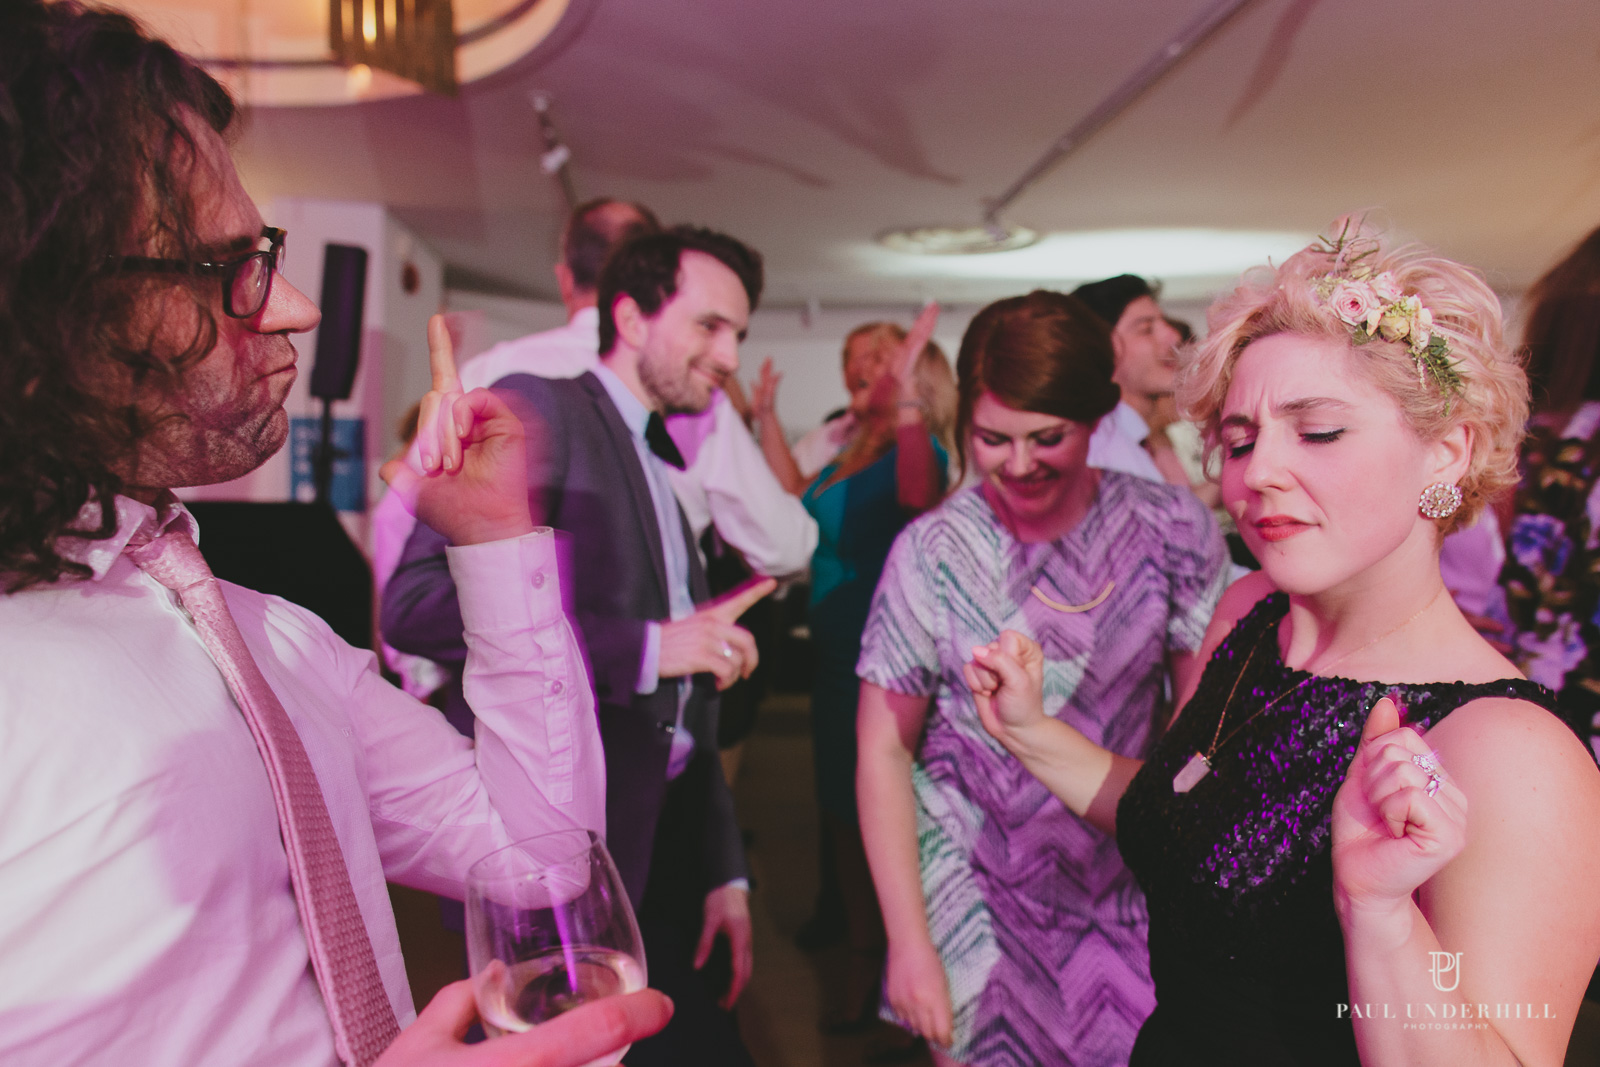 Guests dancing Bournemouth wedding Russell Cotes